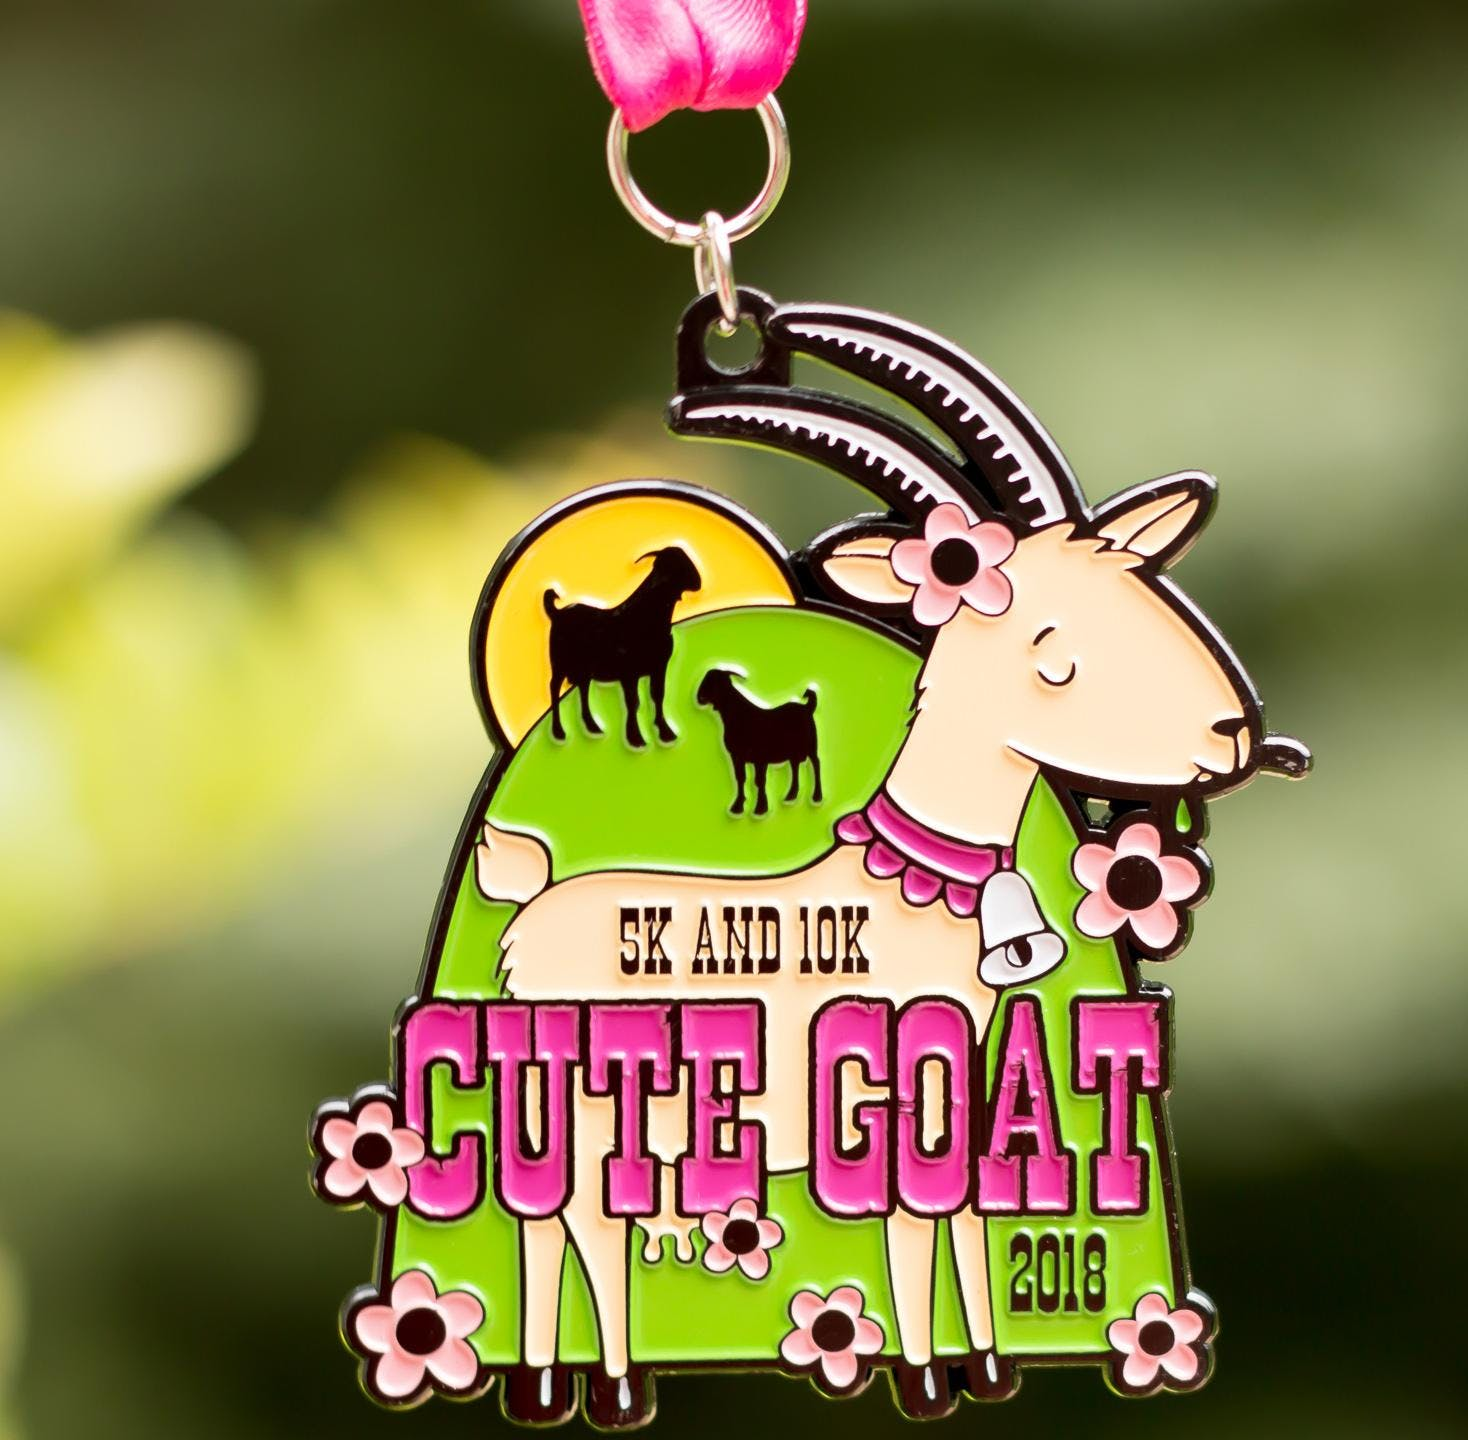 Now Only $10! Cute Goat 5K & 10K - Scottsdale